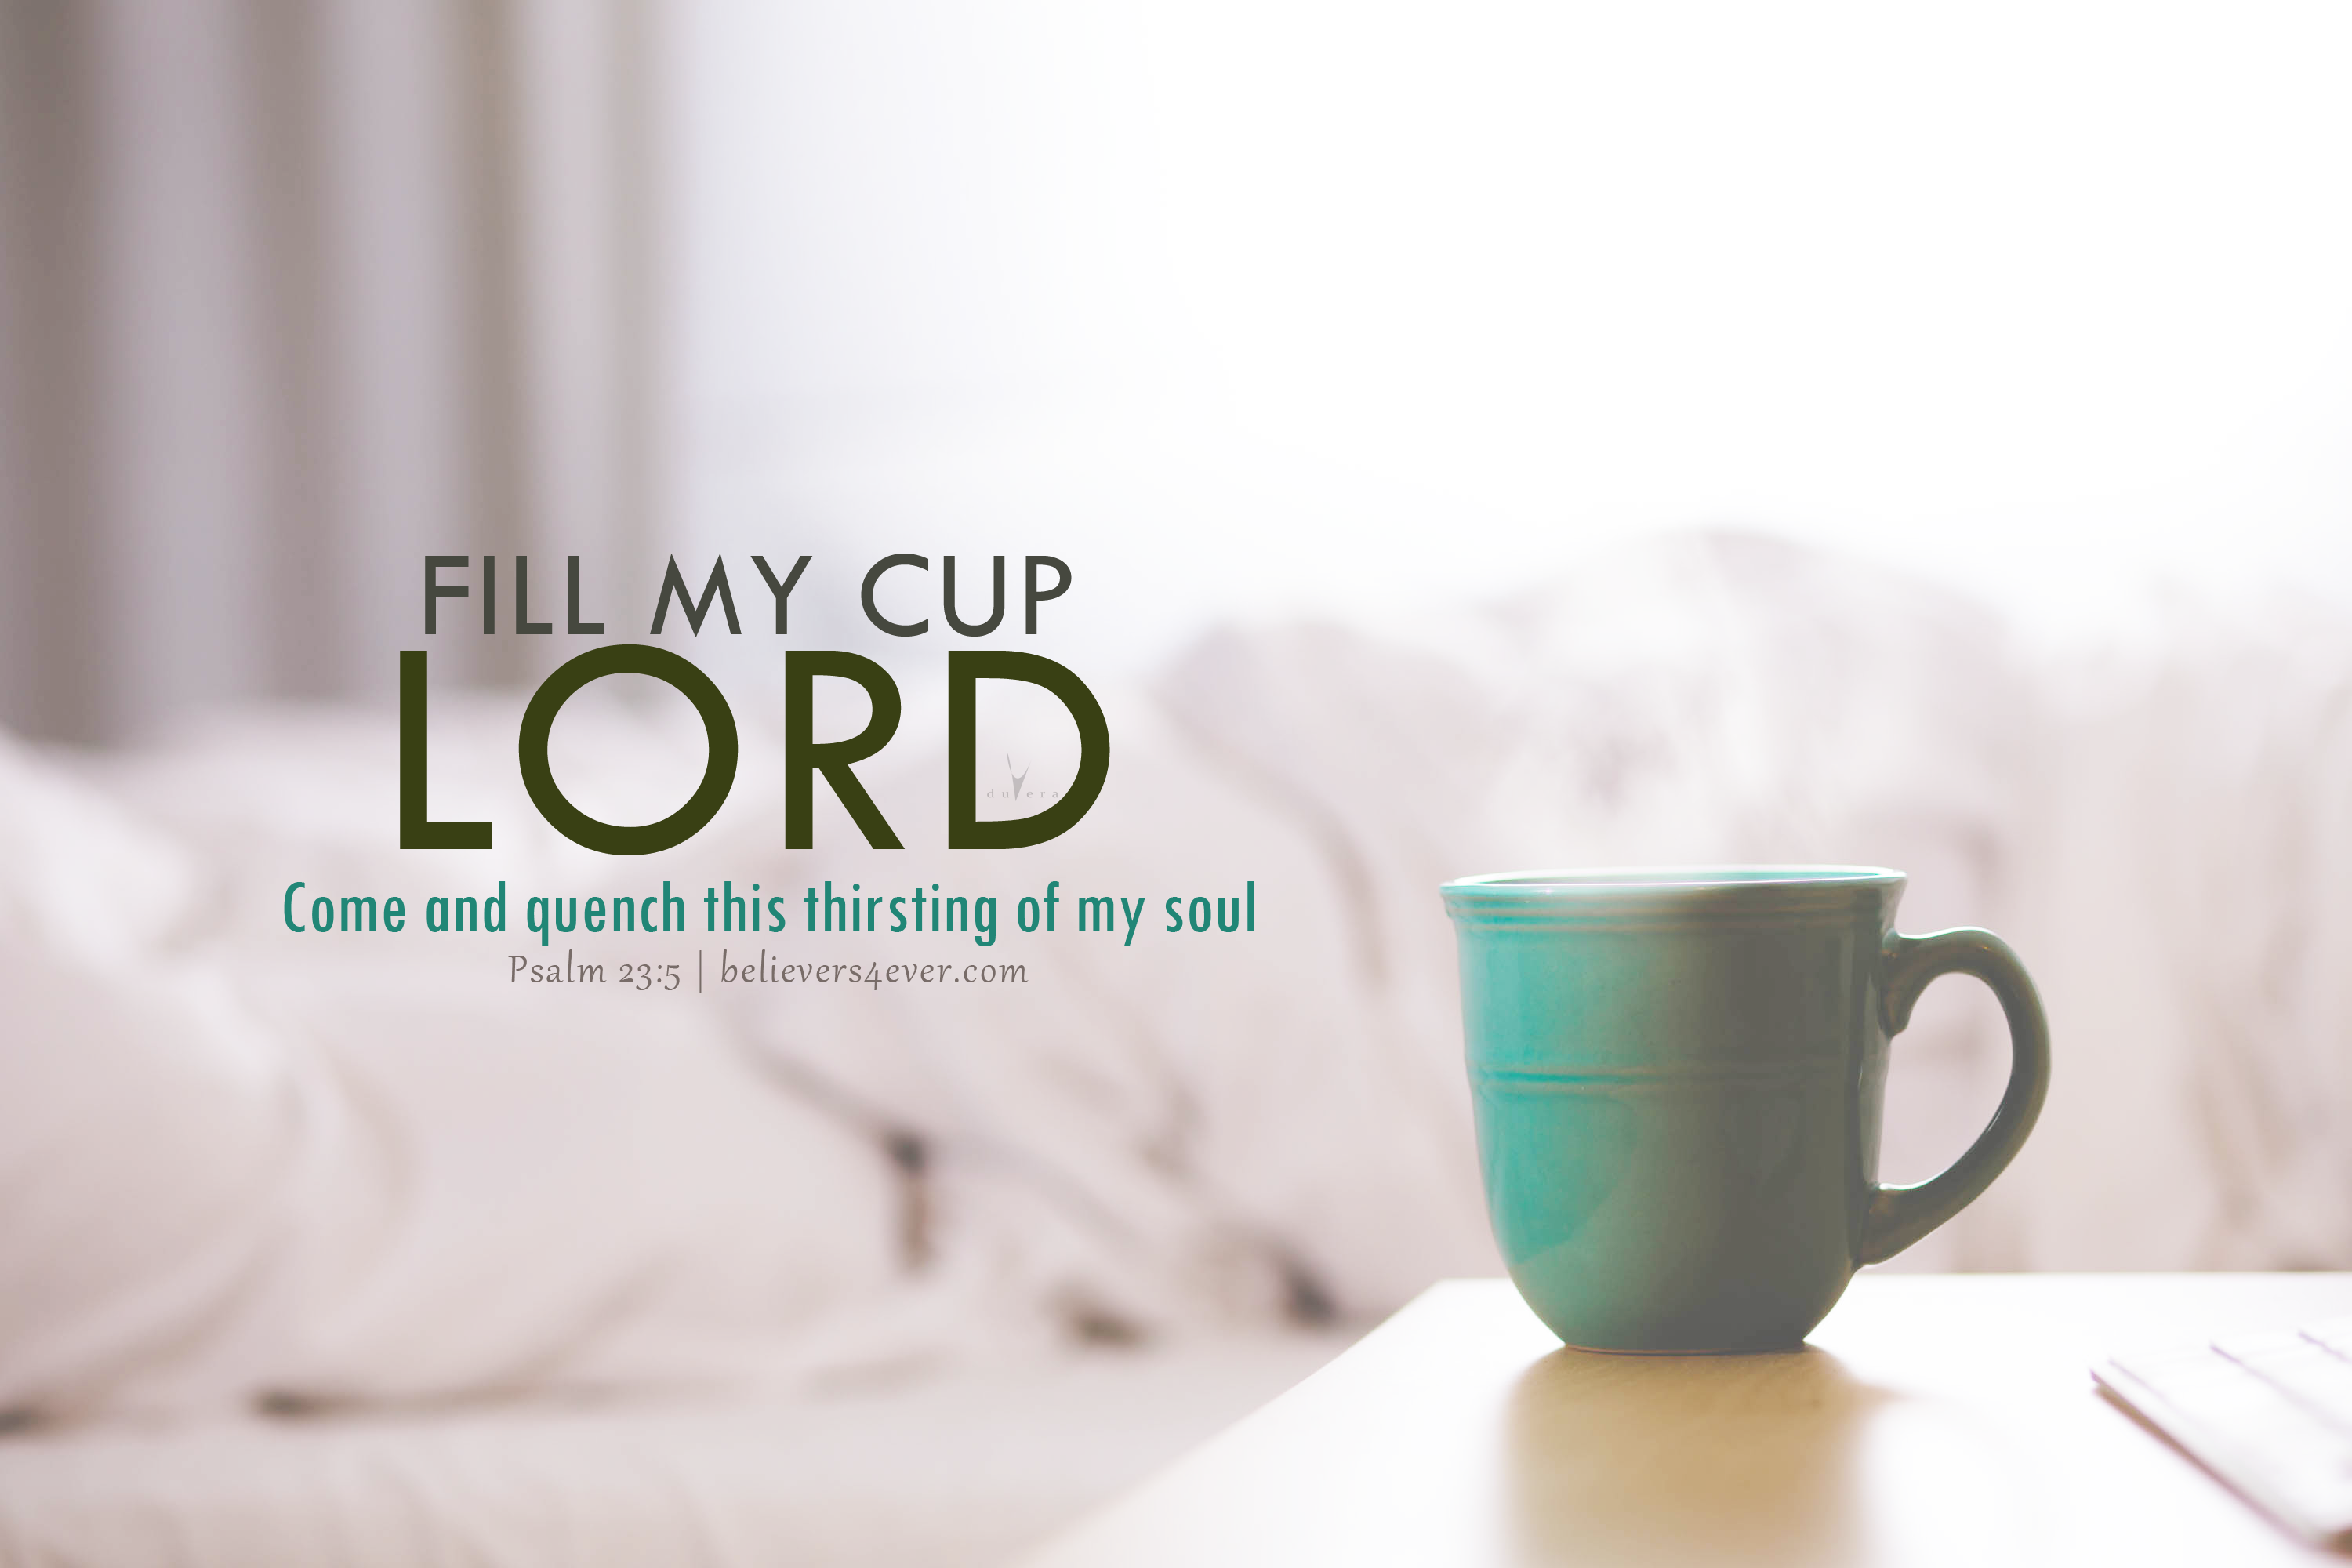 Fill my cup Lord Word of God Christian wallpaper Fill my cup 3000x2000